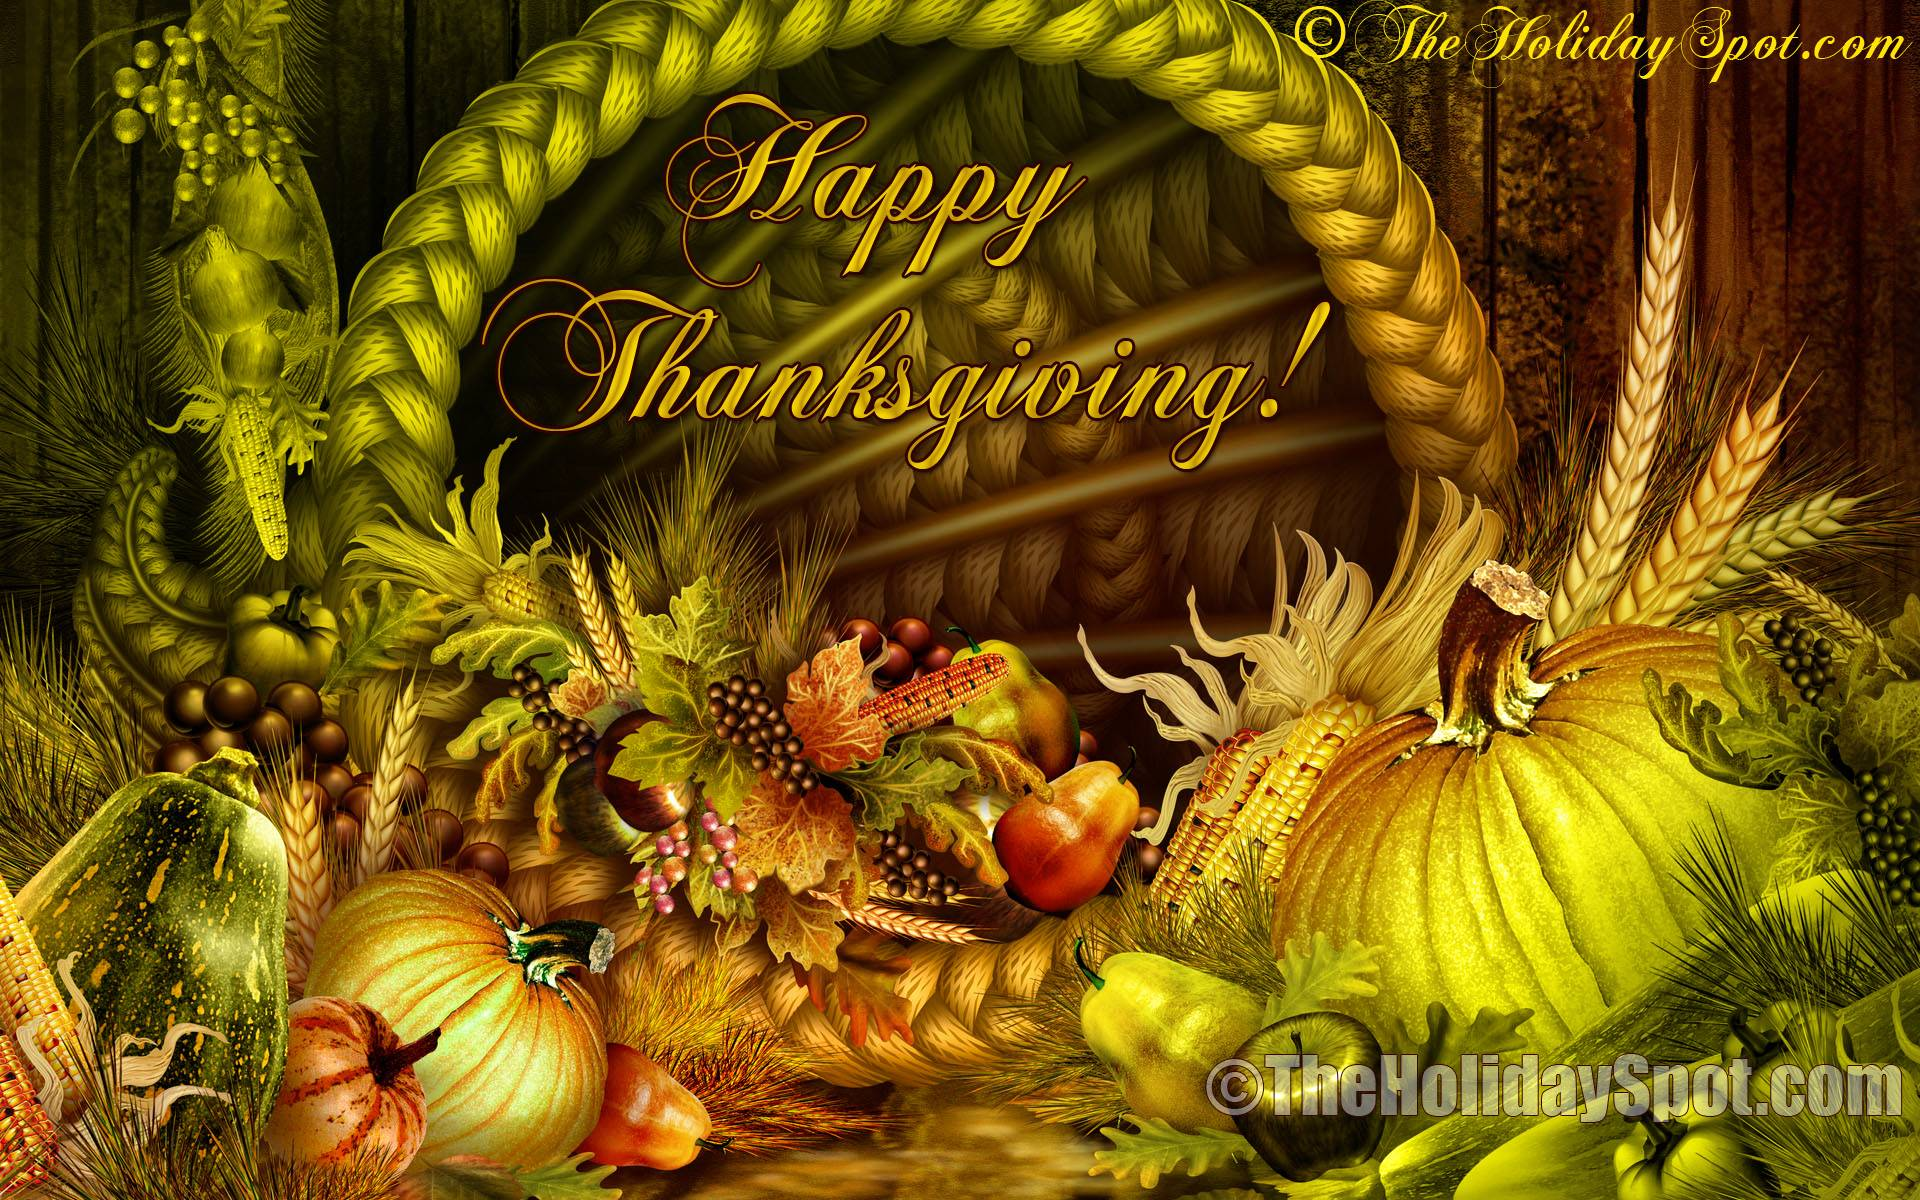 Free Desktop Wallpapers Thanksgiving - Wallpaper Cave